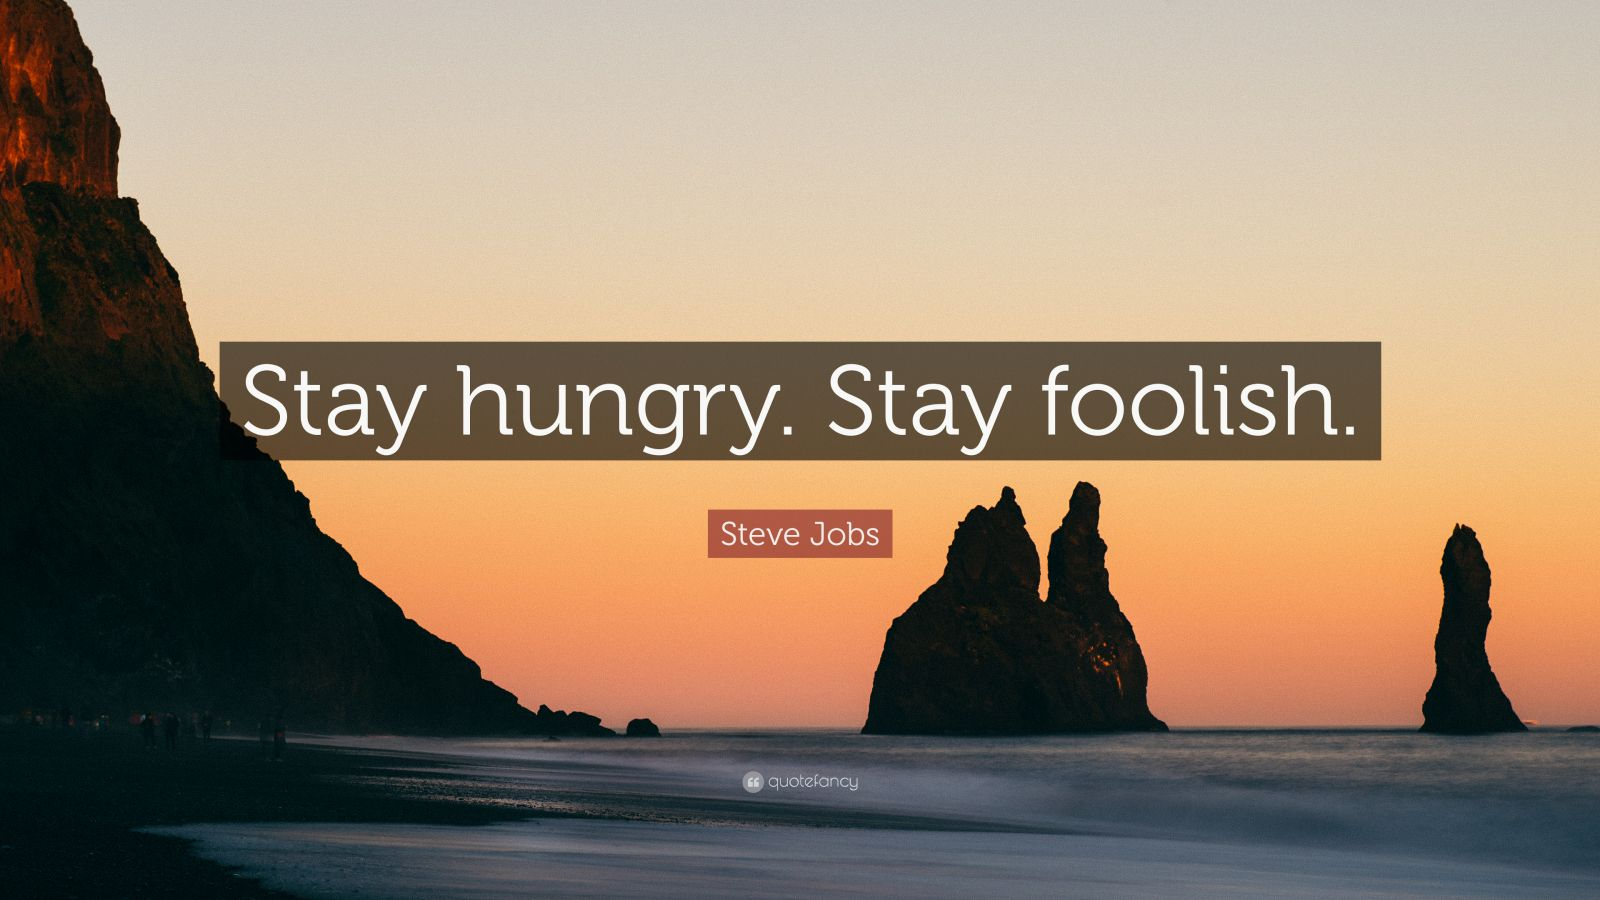 Loves Wallpapers With Quotes Steve Jobs Quote Stay Hungry Stay Foolish 41